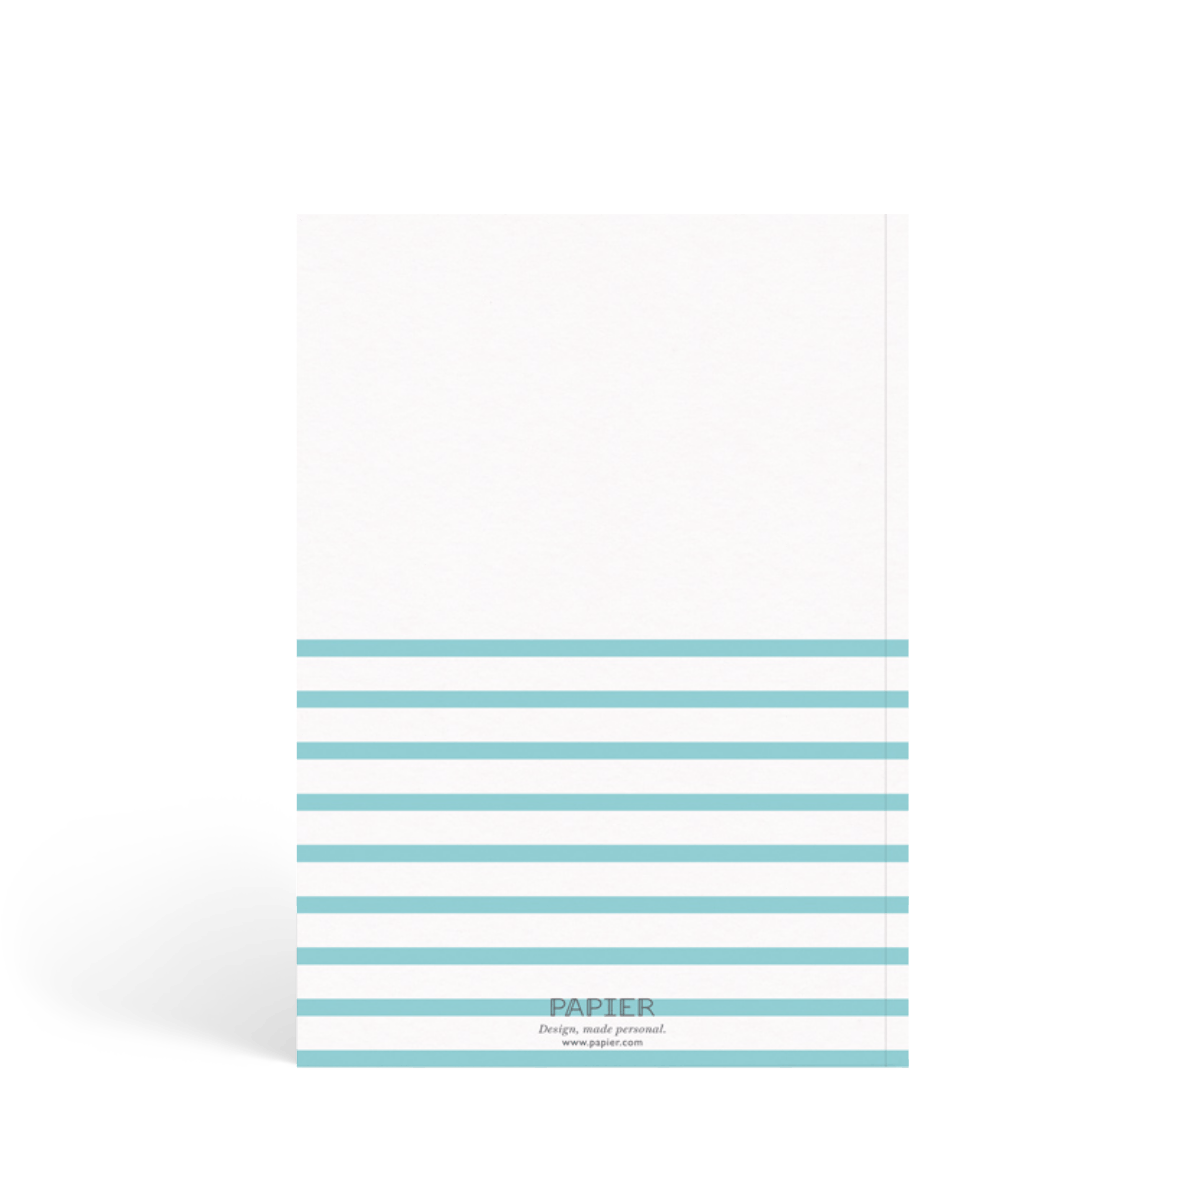 Https%3a%2f%2fwww.papier.com%2fproduct image%2f10160%2f5%2fdemi stripe 2589 arriere 1470846562.png?ixlib=rb 1.1